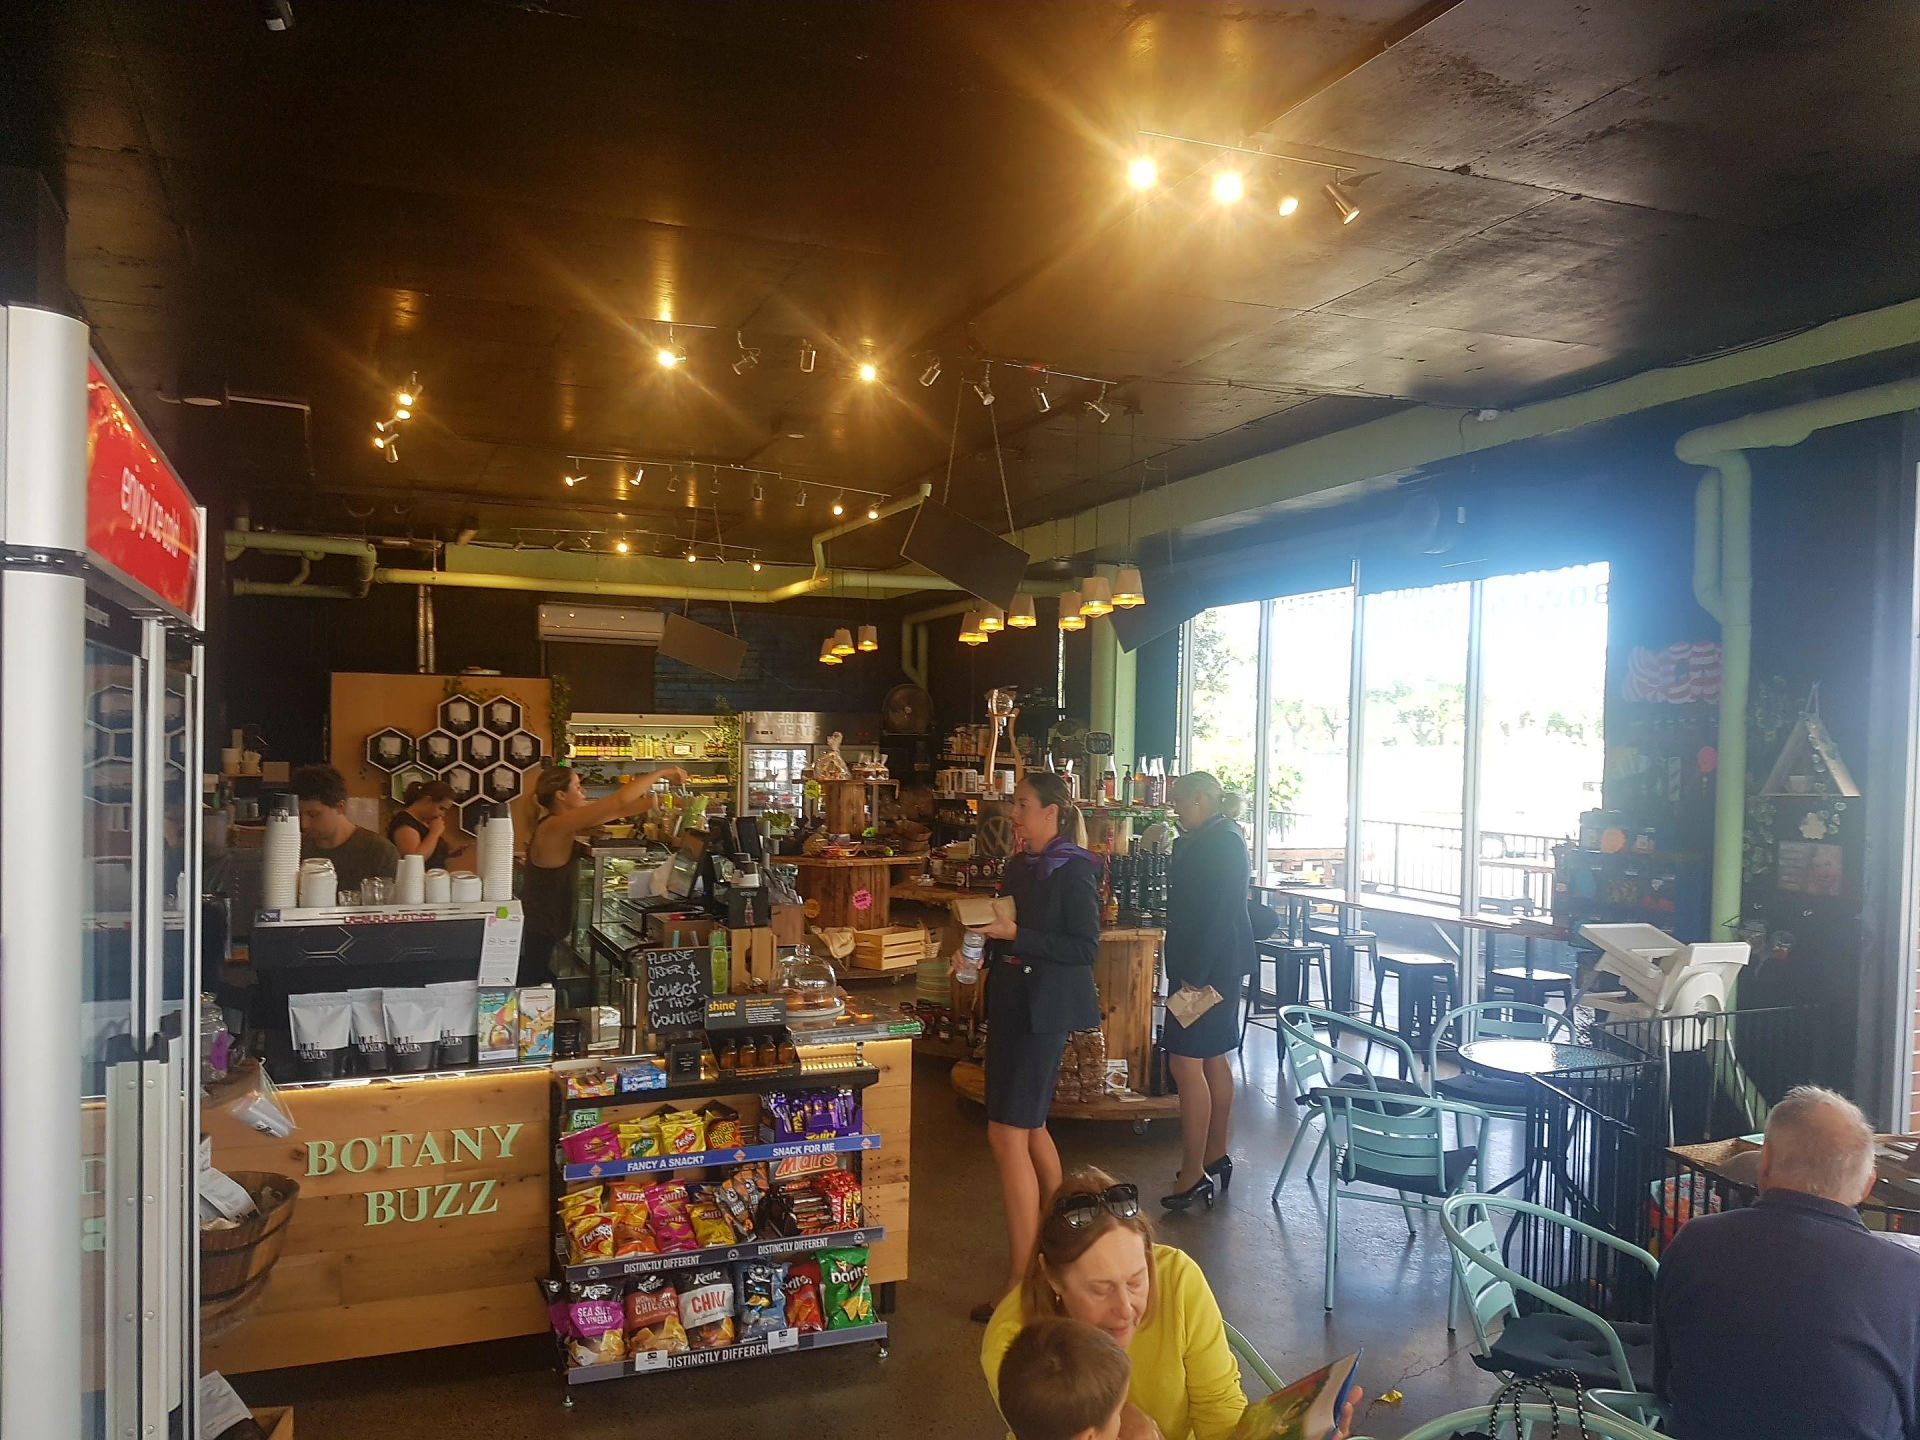 Specialty Convenience store/cafe - great profits & lifestyle, with room to grow!